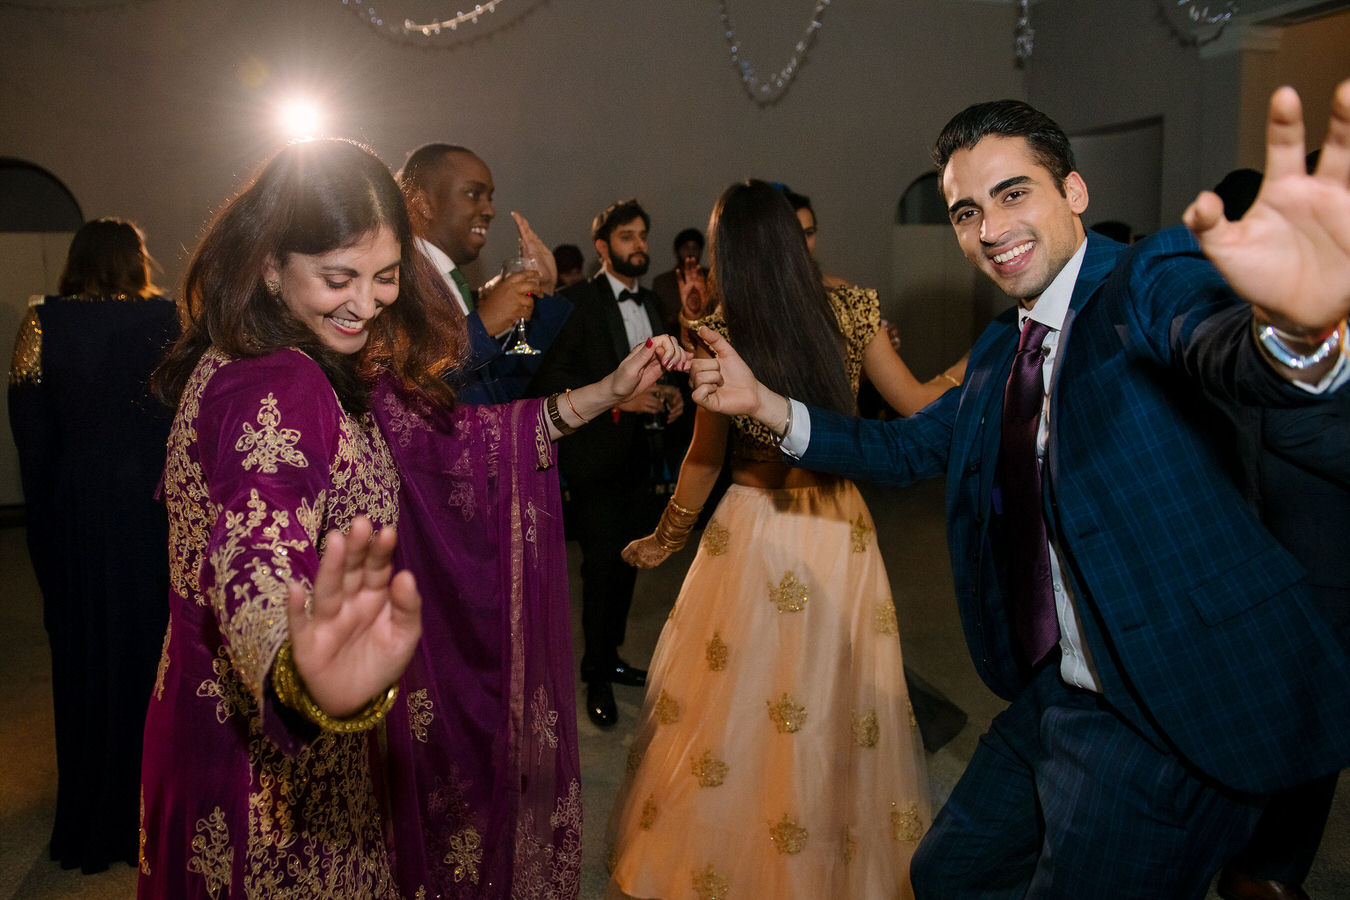 Wedding guests are dancing and feeling good at the Sikh Asian wedding.